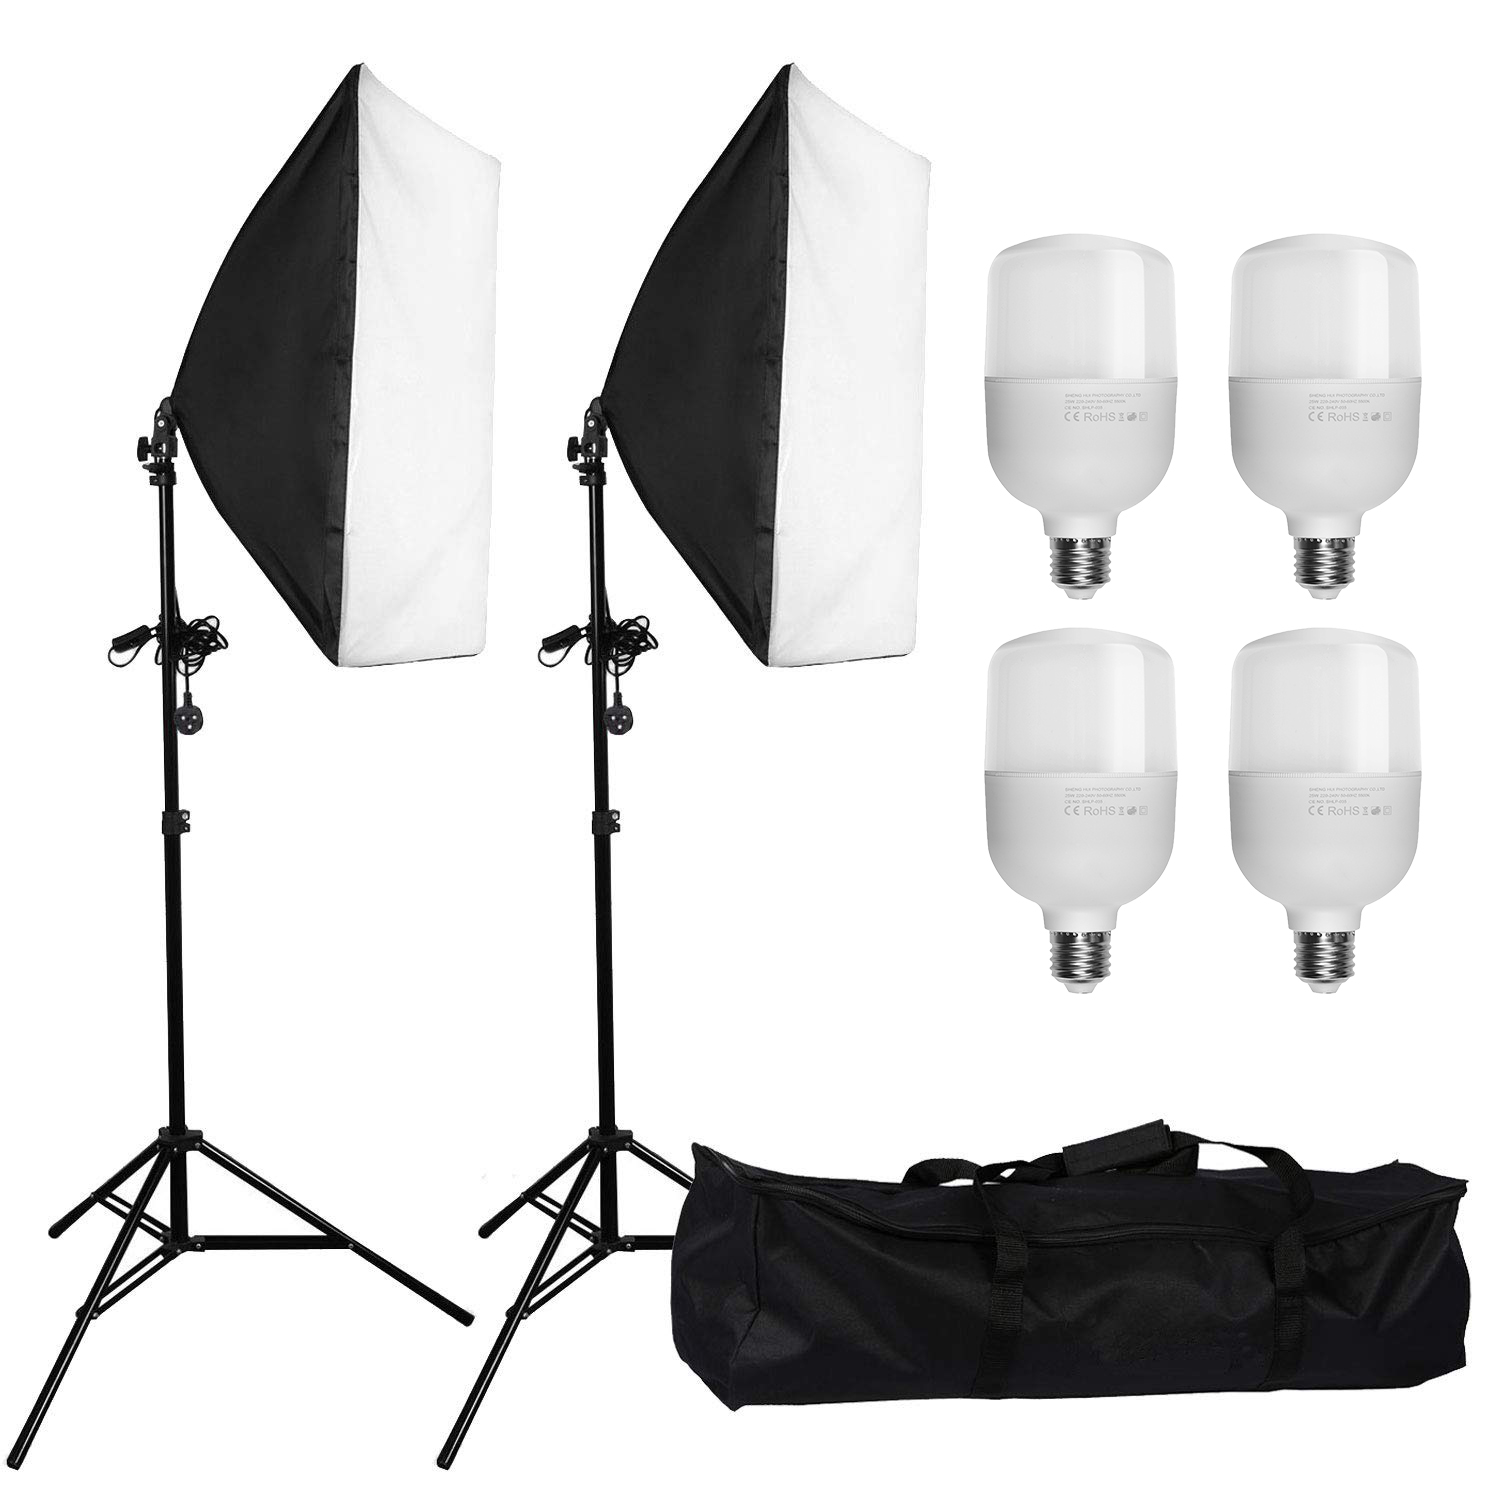 zuochen photo studio softbox lights continuous lighting kit with 2pcs soft box 4 led blub 2 tripod stand for facebook live